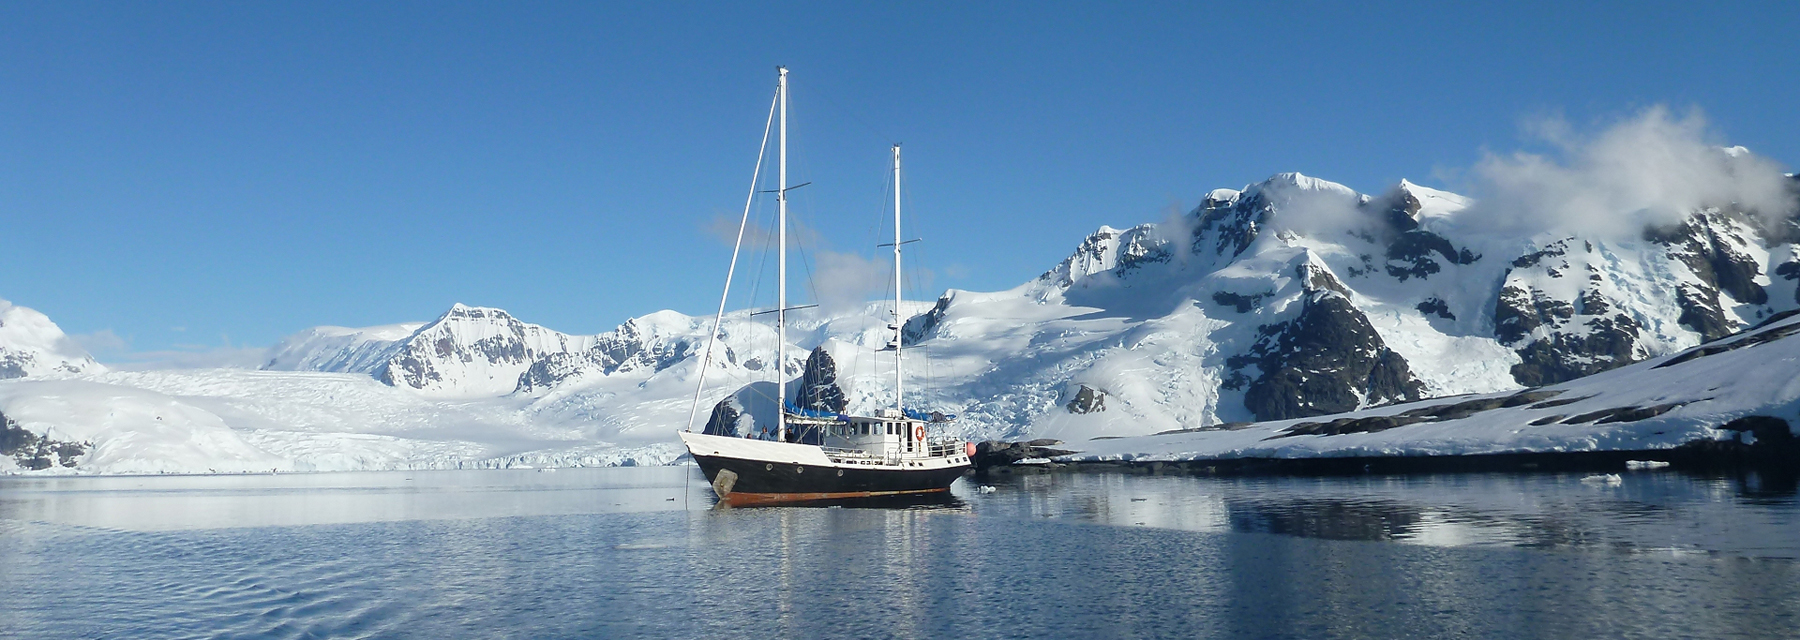 Antarctique2